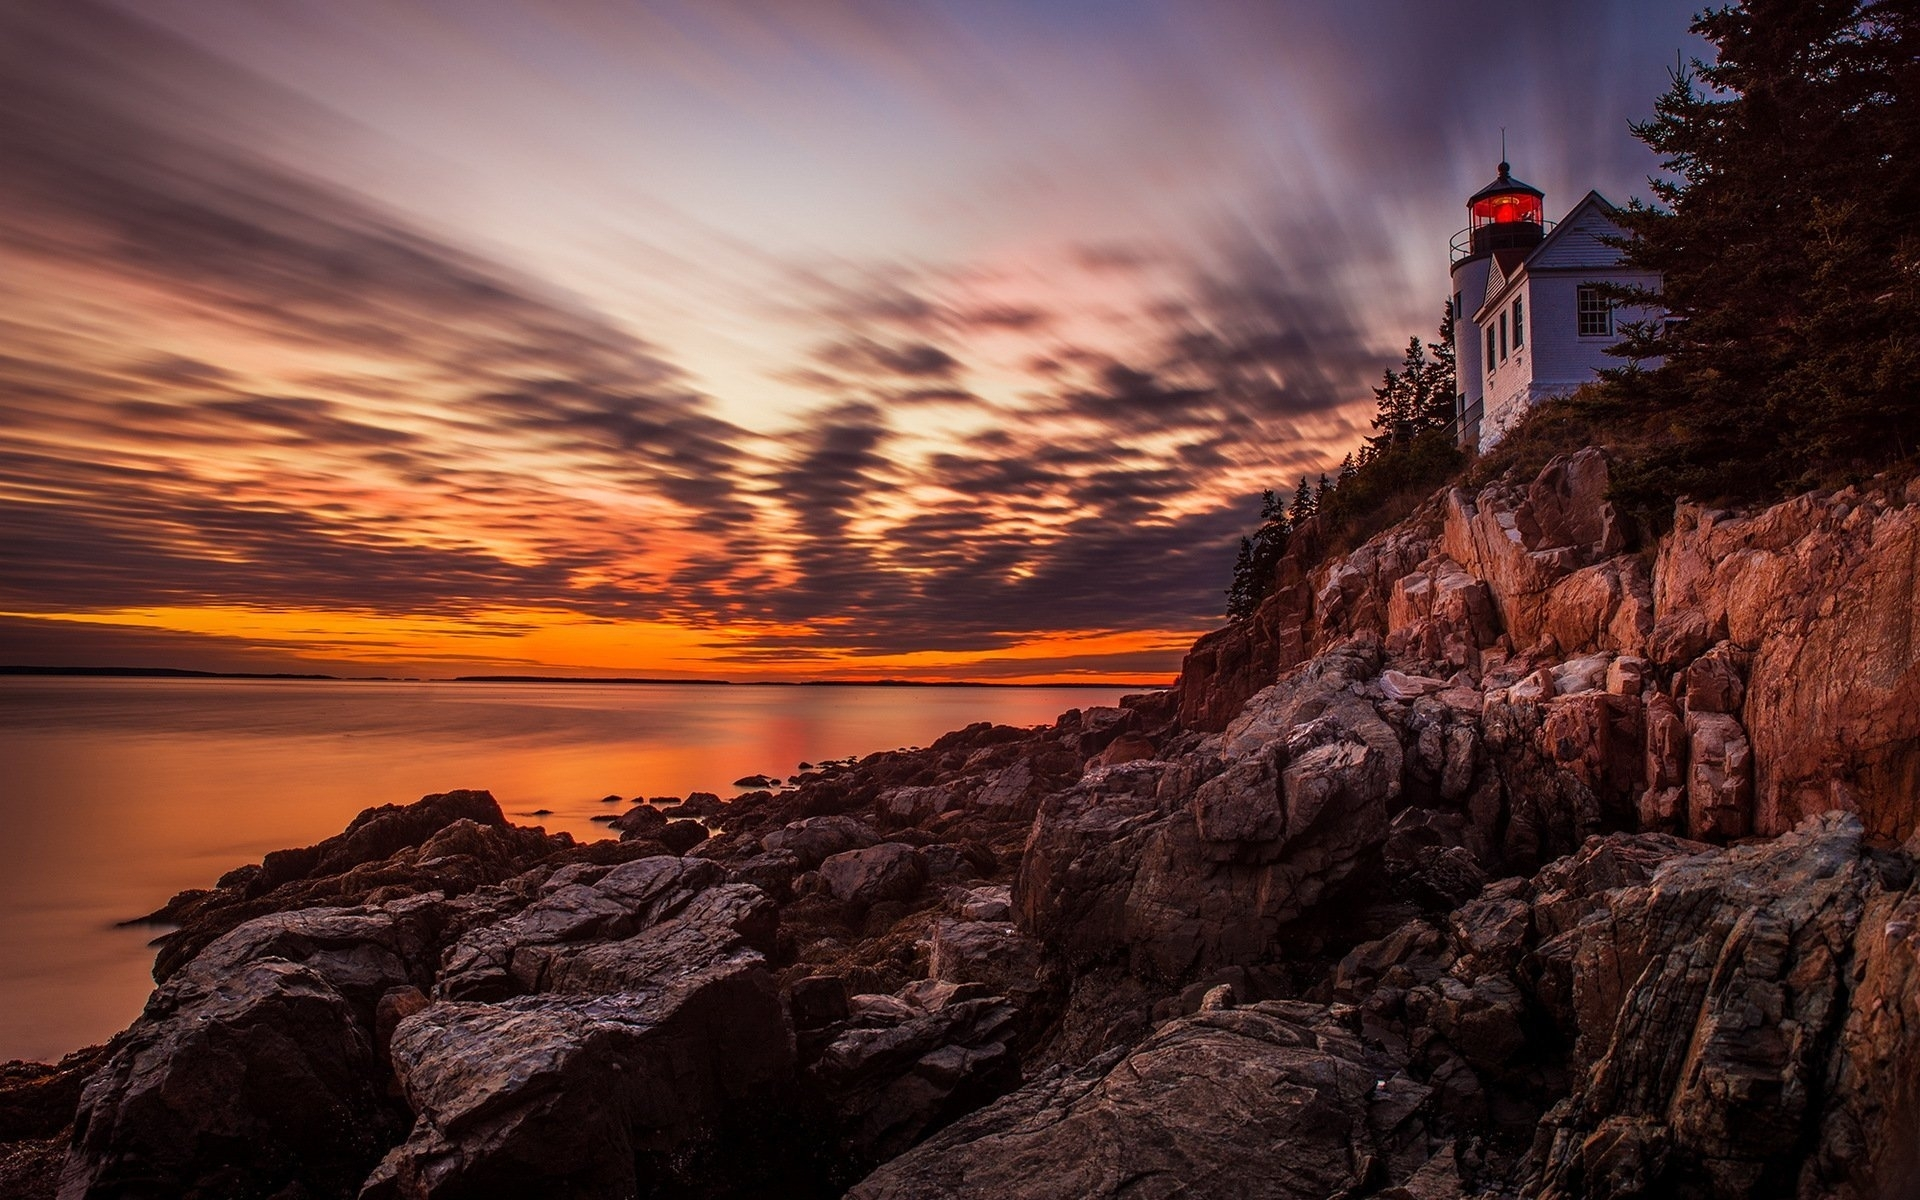 acadia national park sunset lighthouse hd wallpaper